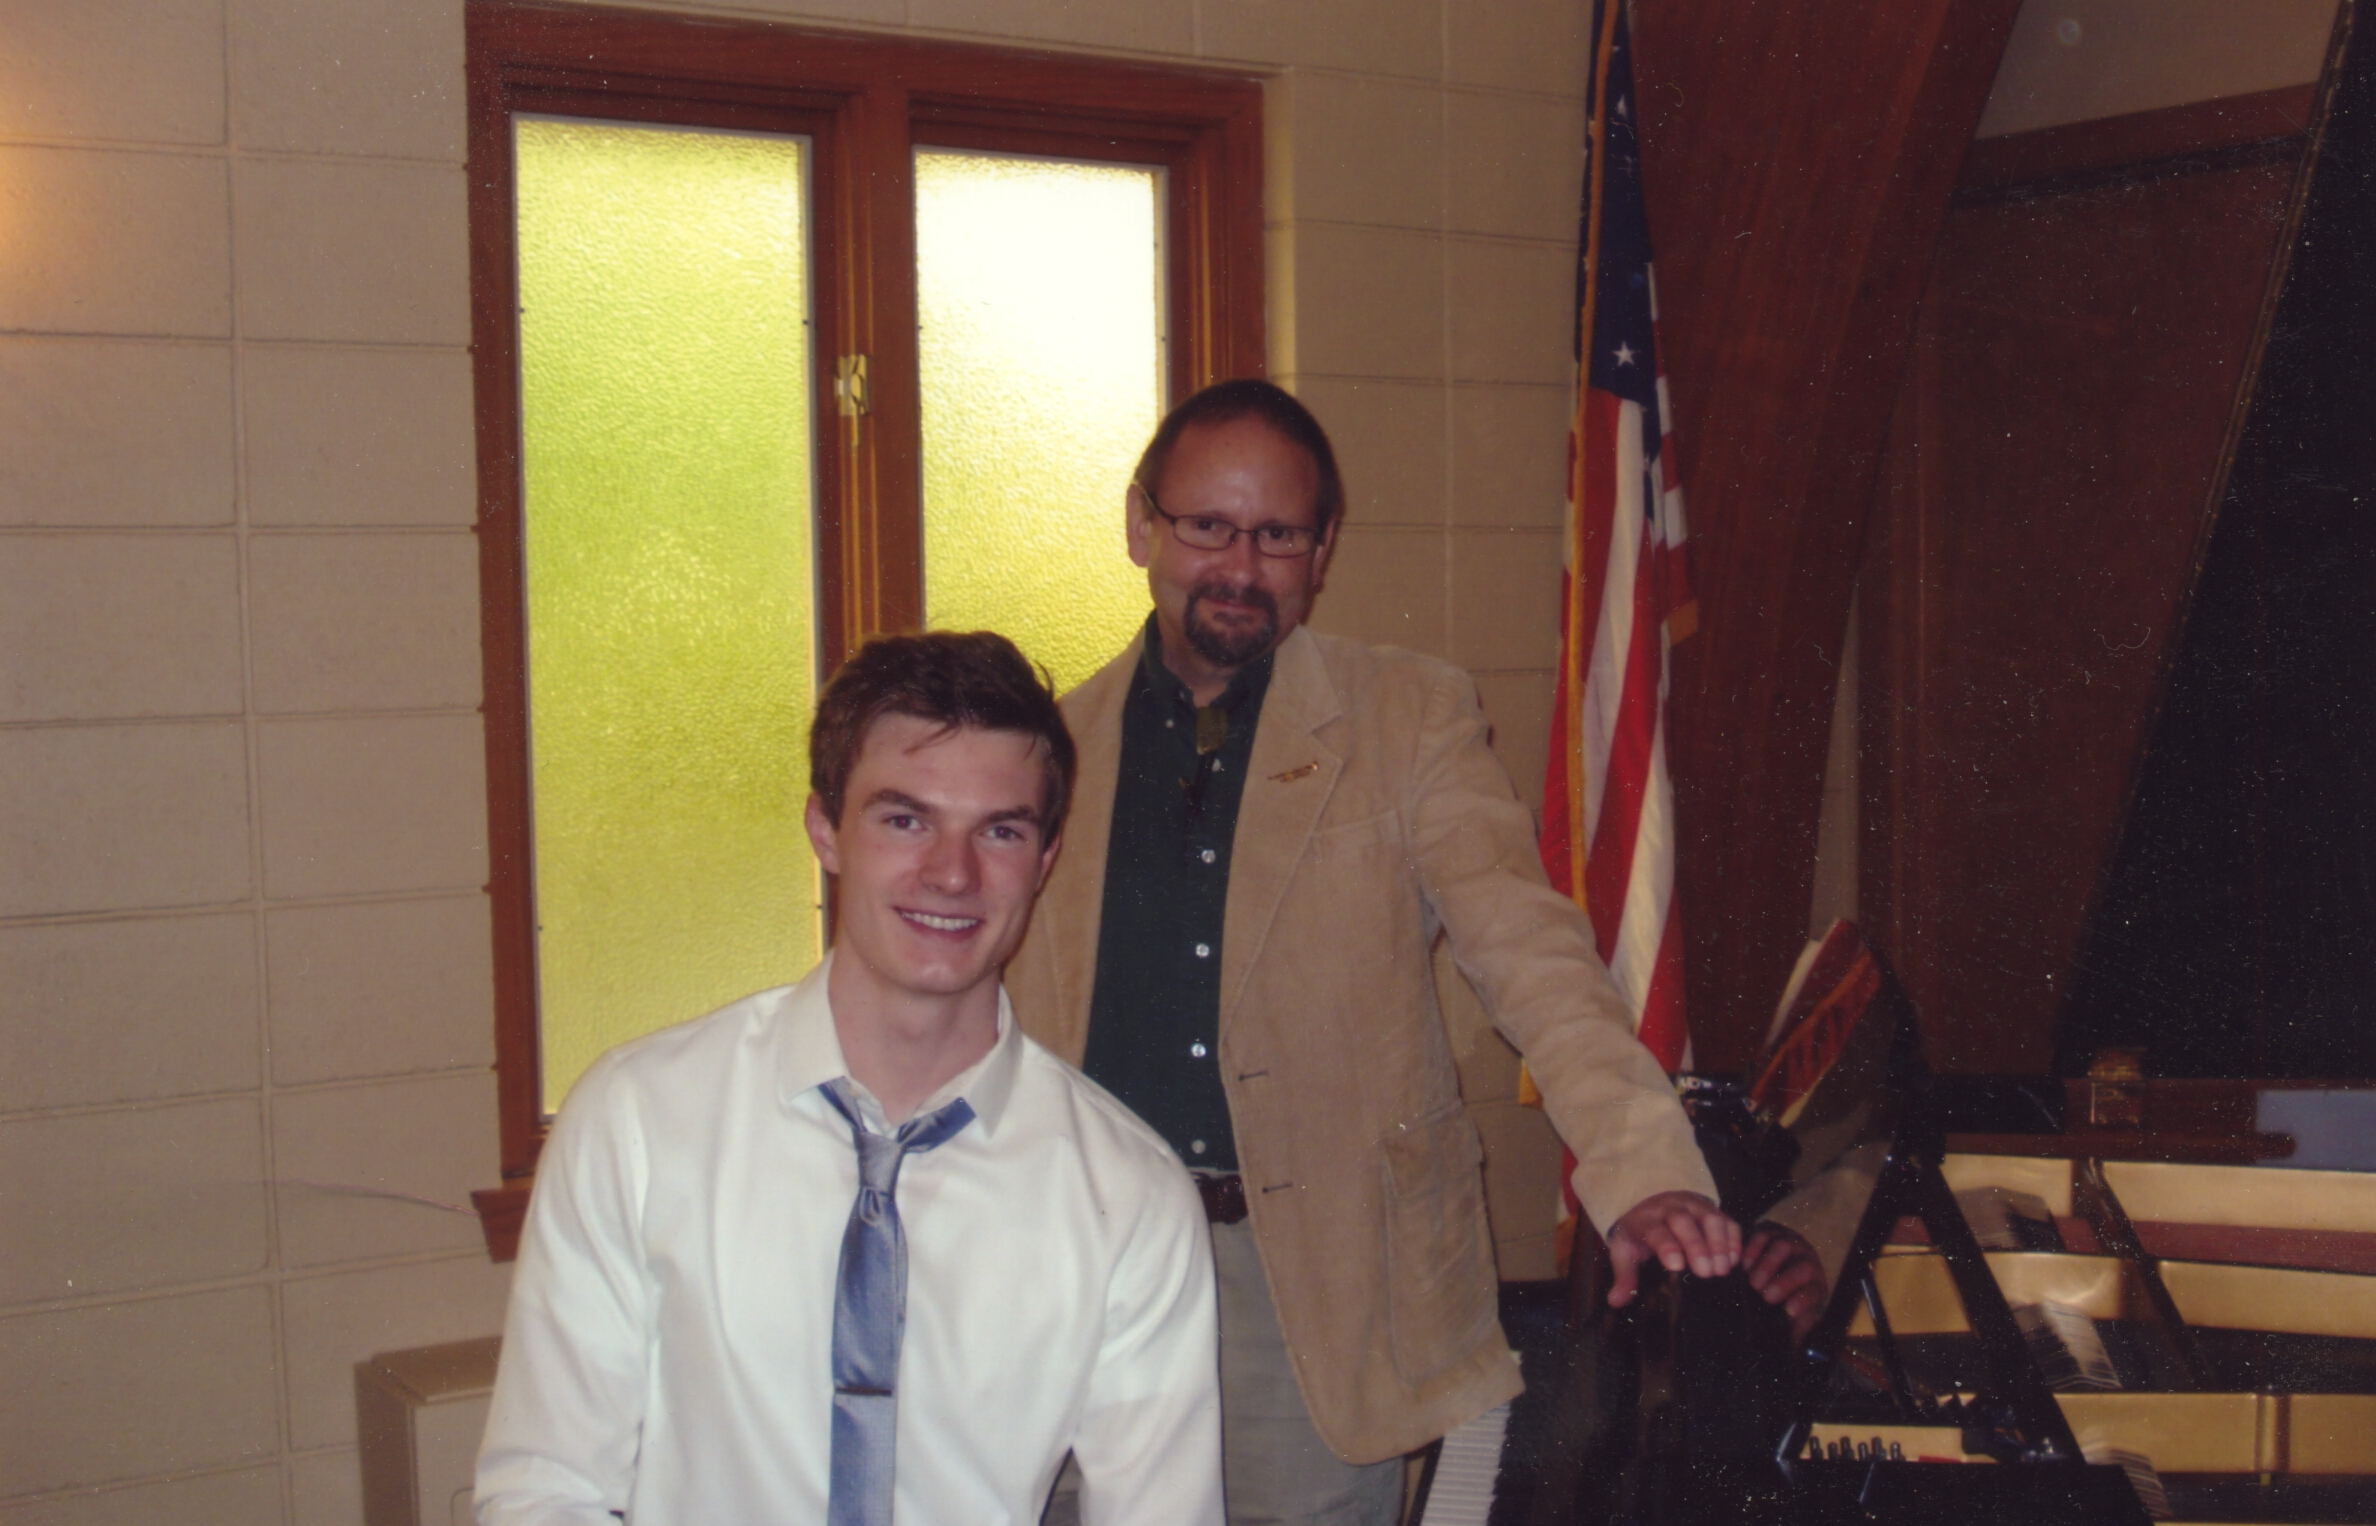 Bruce Clark at the piano with a student